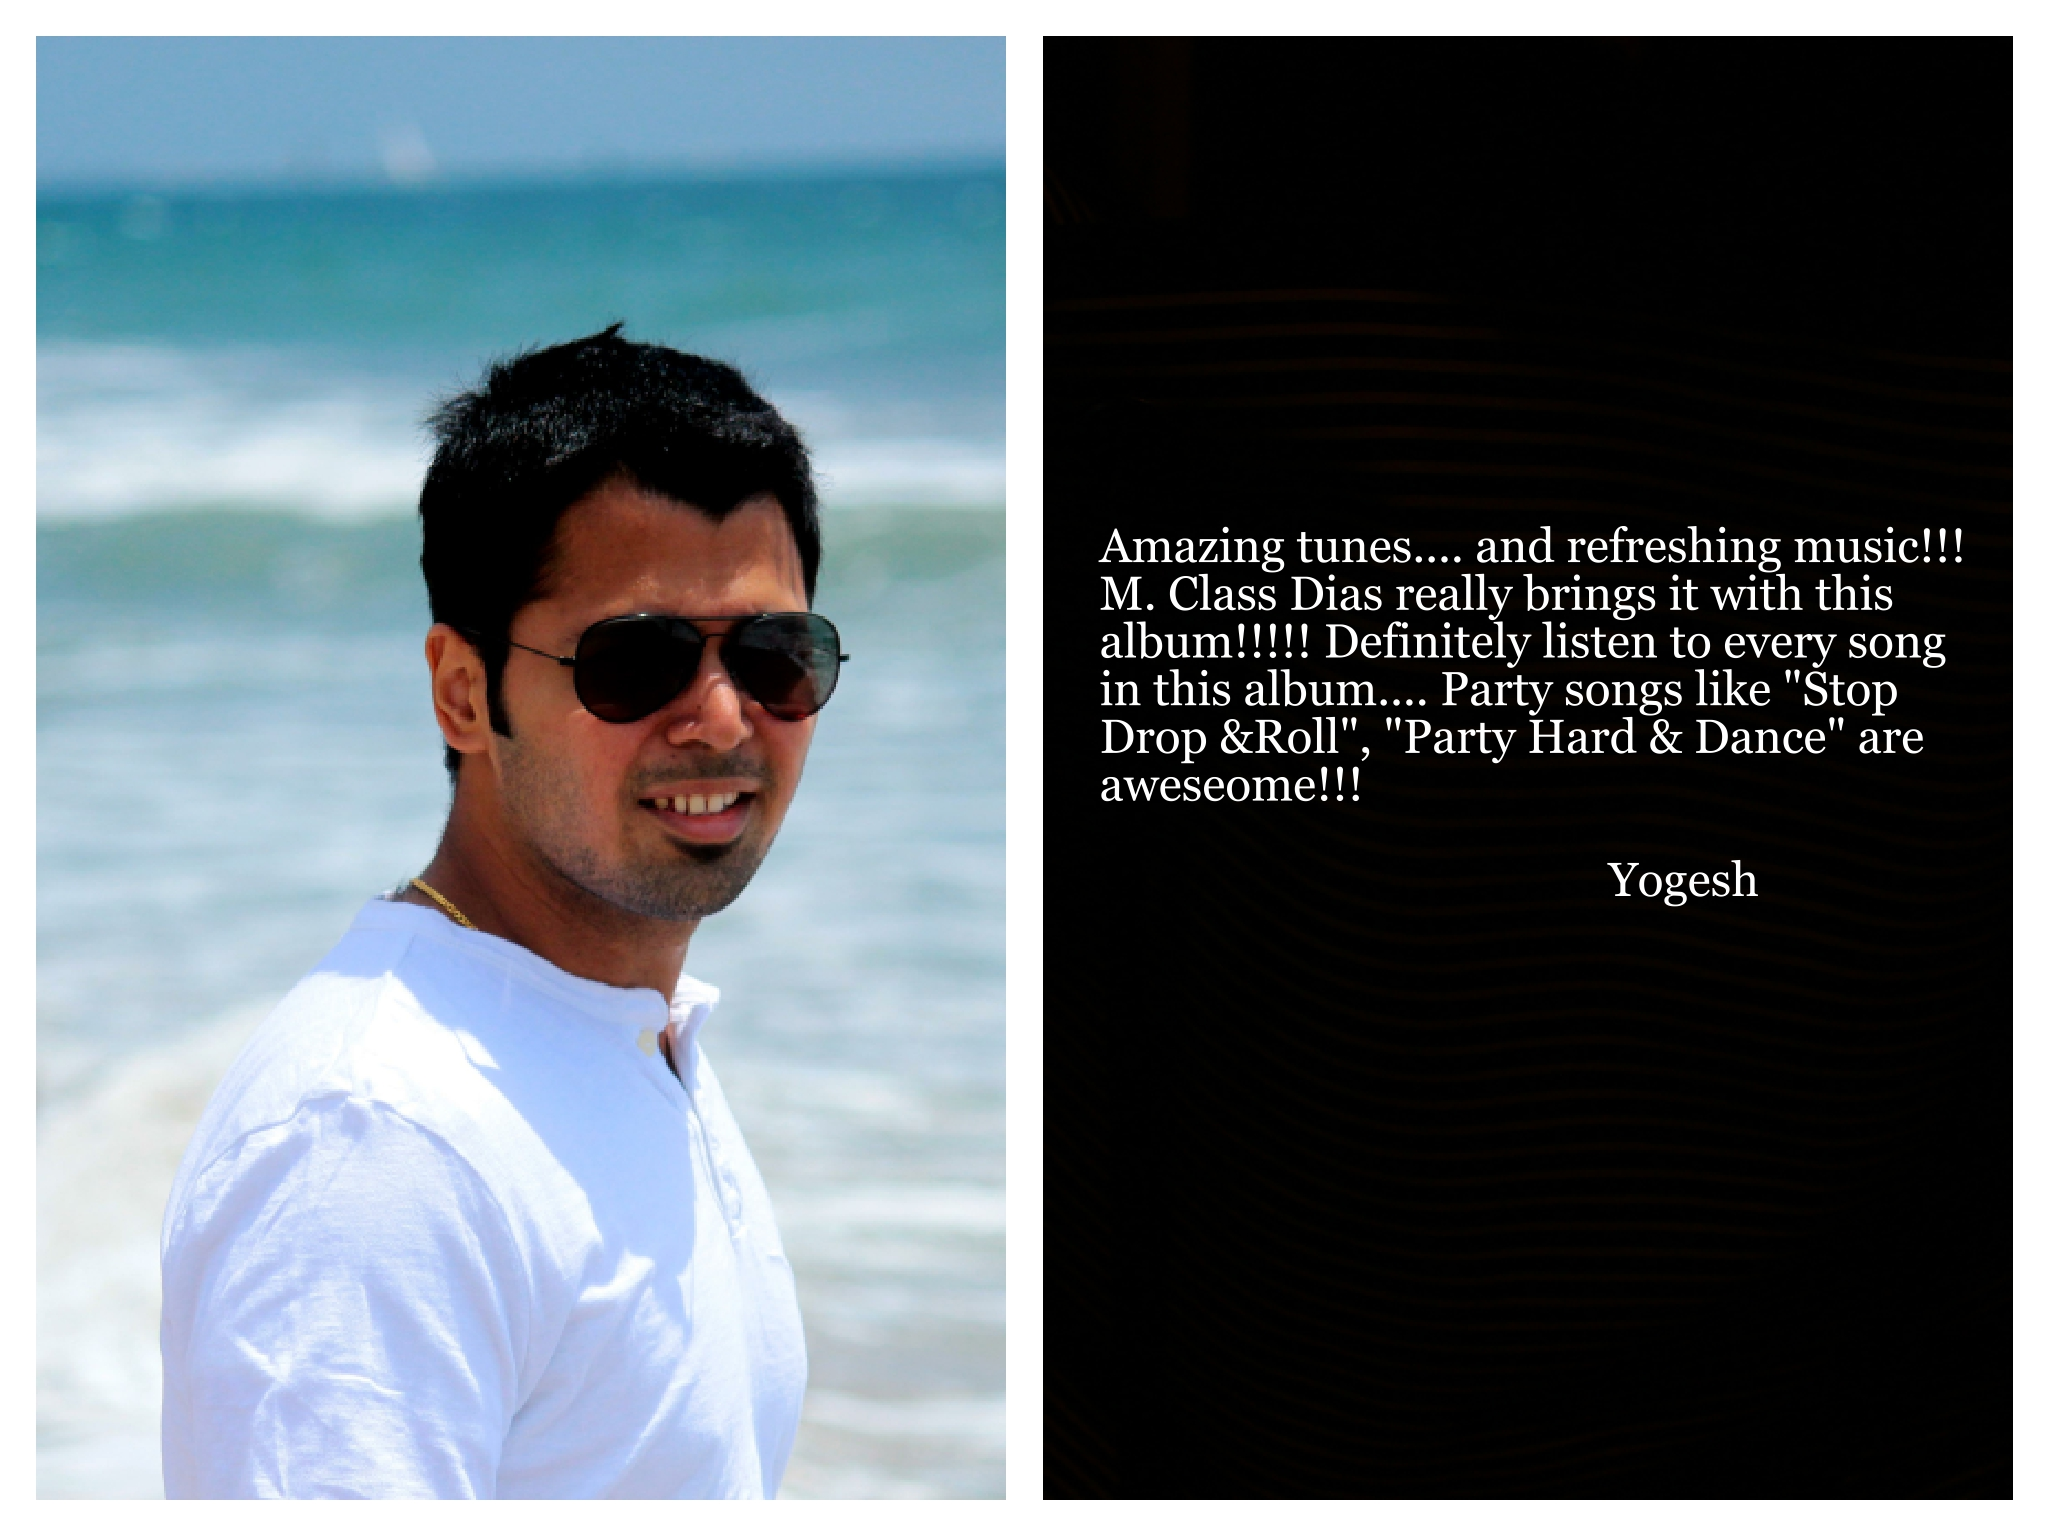 Yogesh's Review